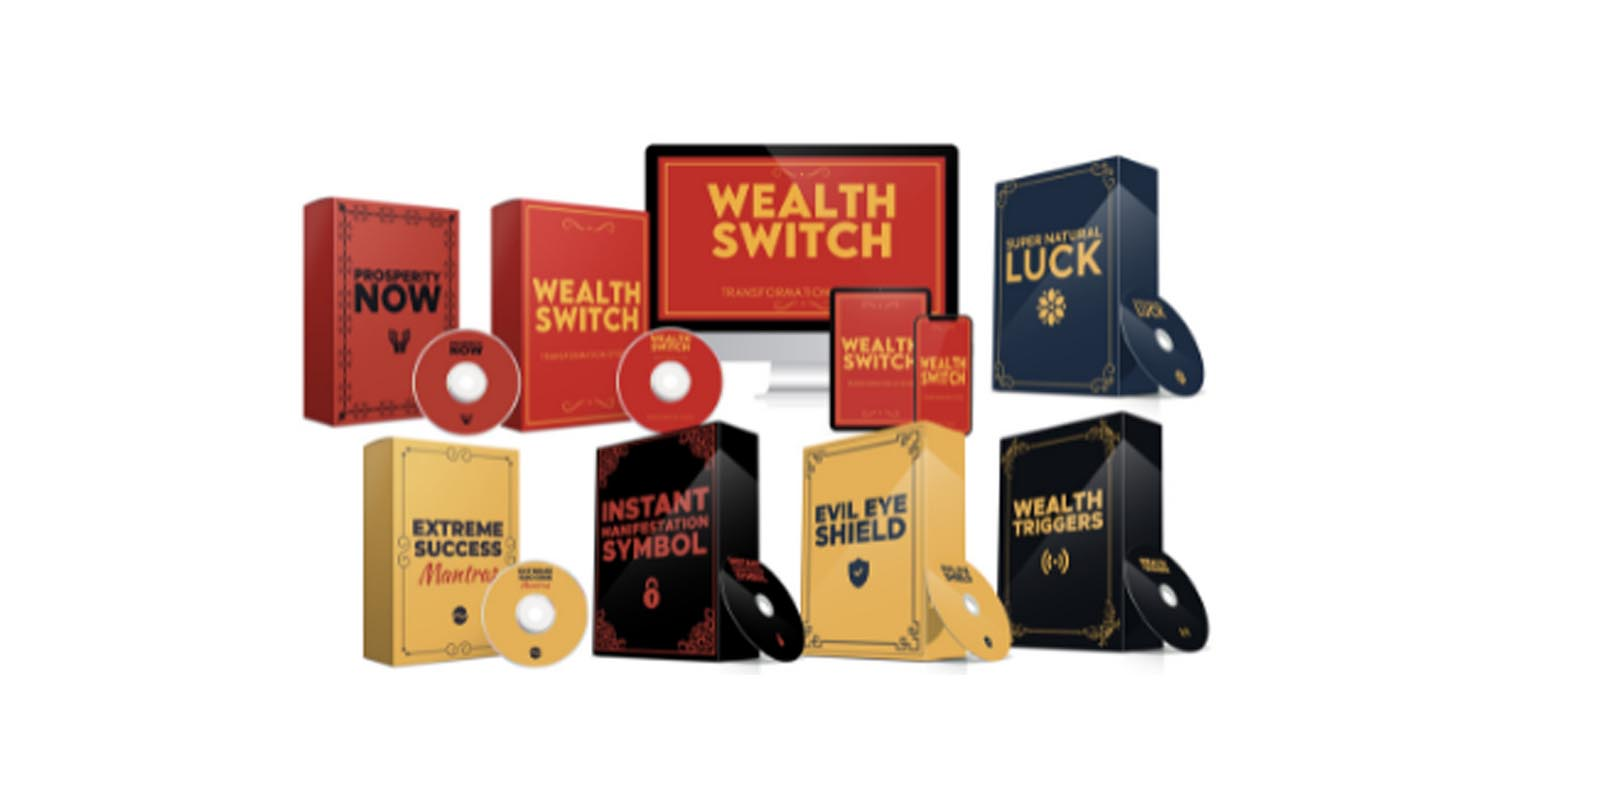 Wealth Switch Product